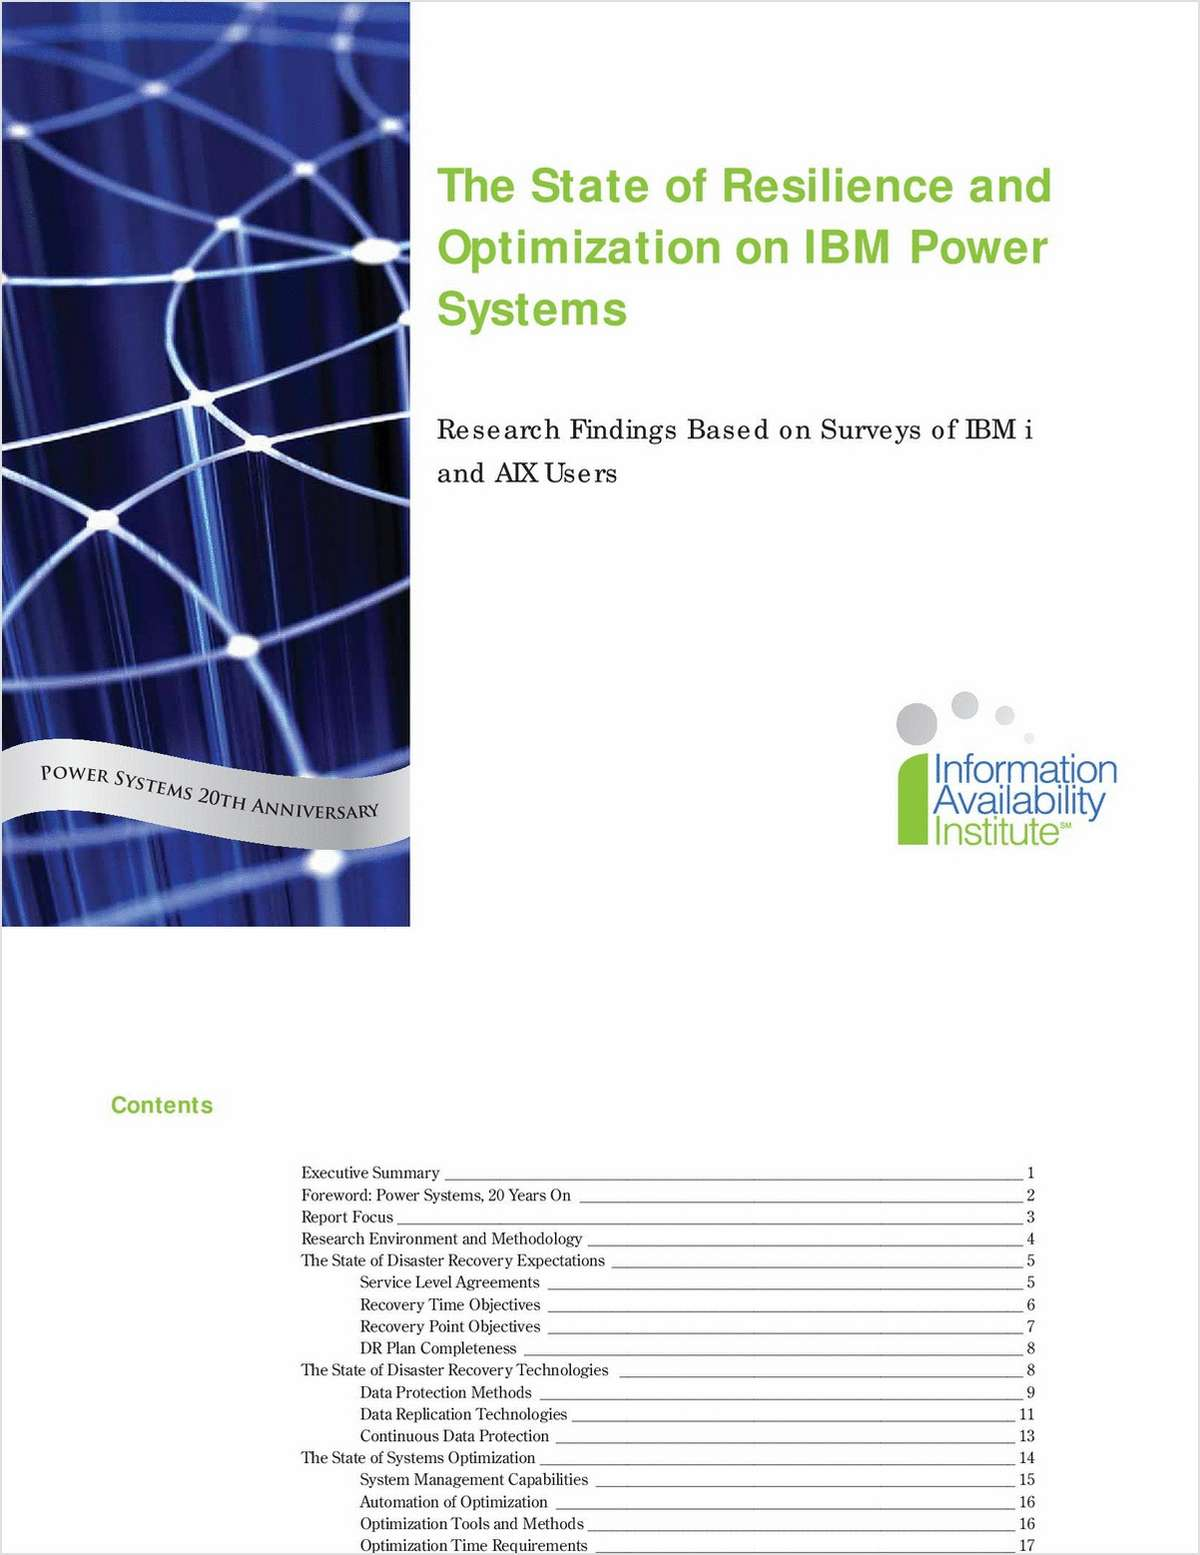 The State of Resilience & Optimization on IBM Power Systems (System i and System p)